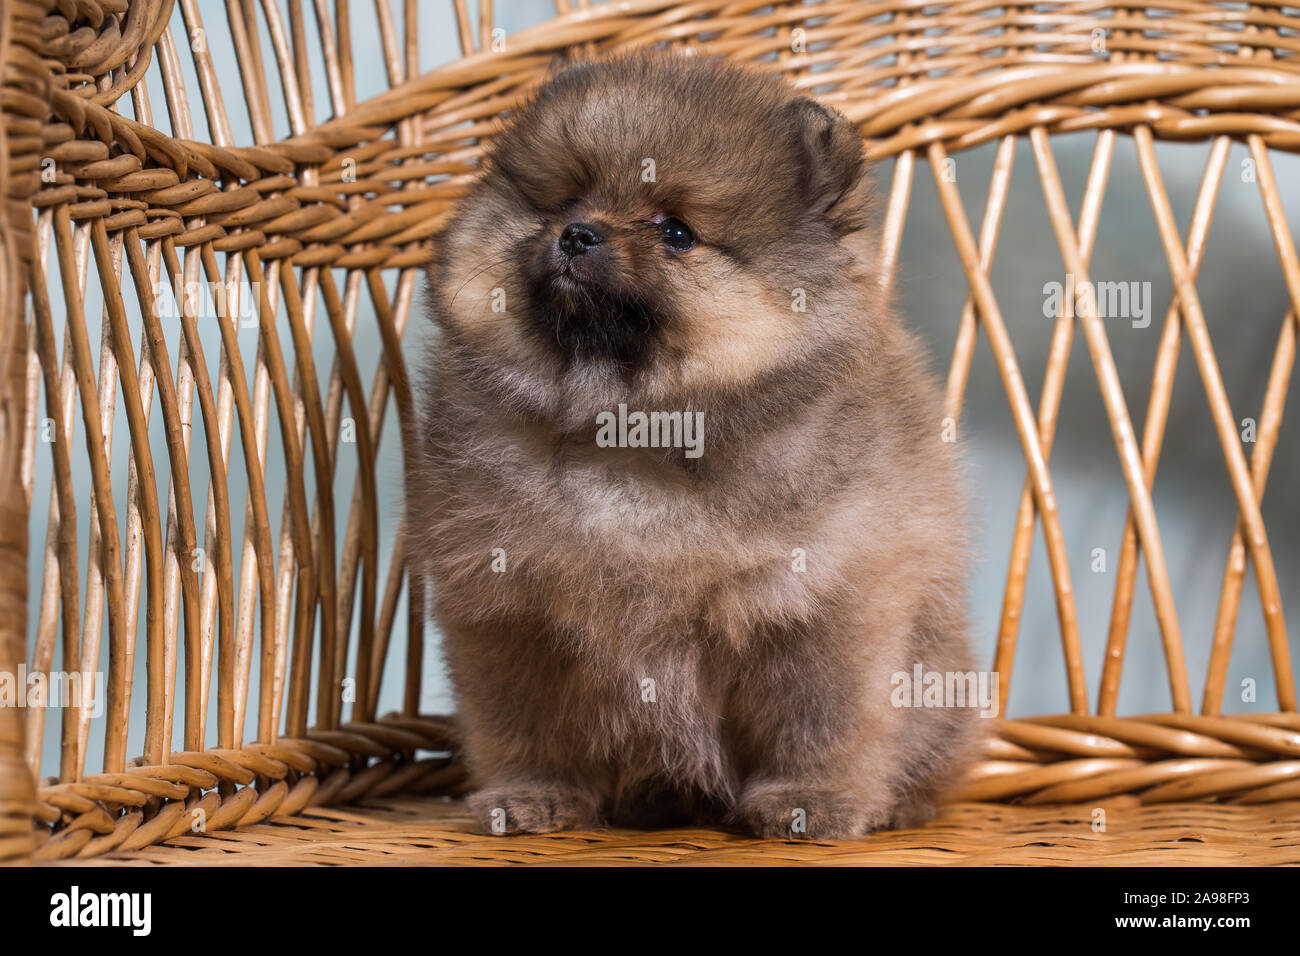 Cute Puppy Of Miniature Pomeranian Spitz Zwergspitz Or Dwarf Spitz On A Chair Small Dog Is Two Month Old Stock Photo Alamy